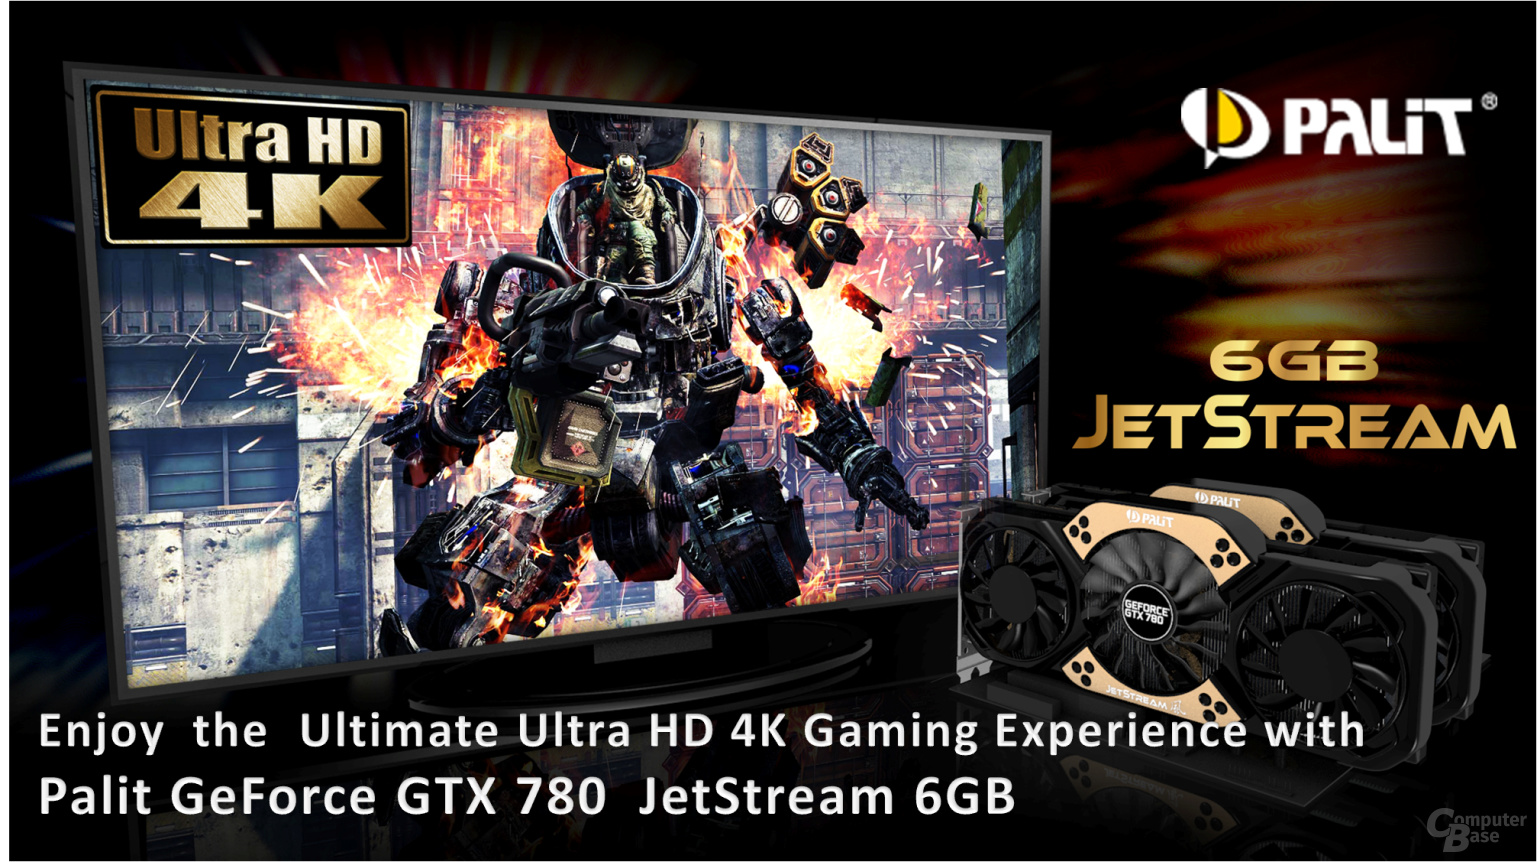 Palit GTX 780 JetStream mit 6 GB